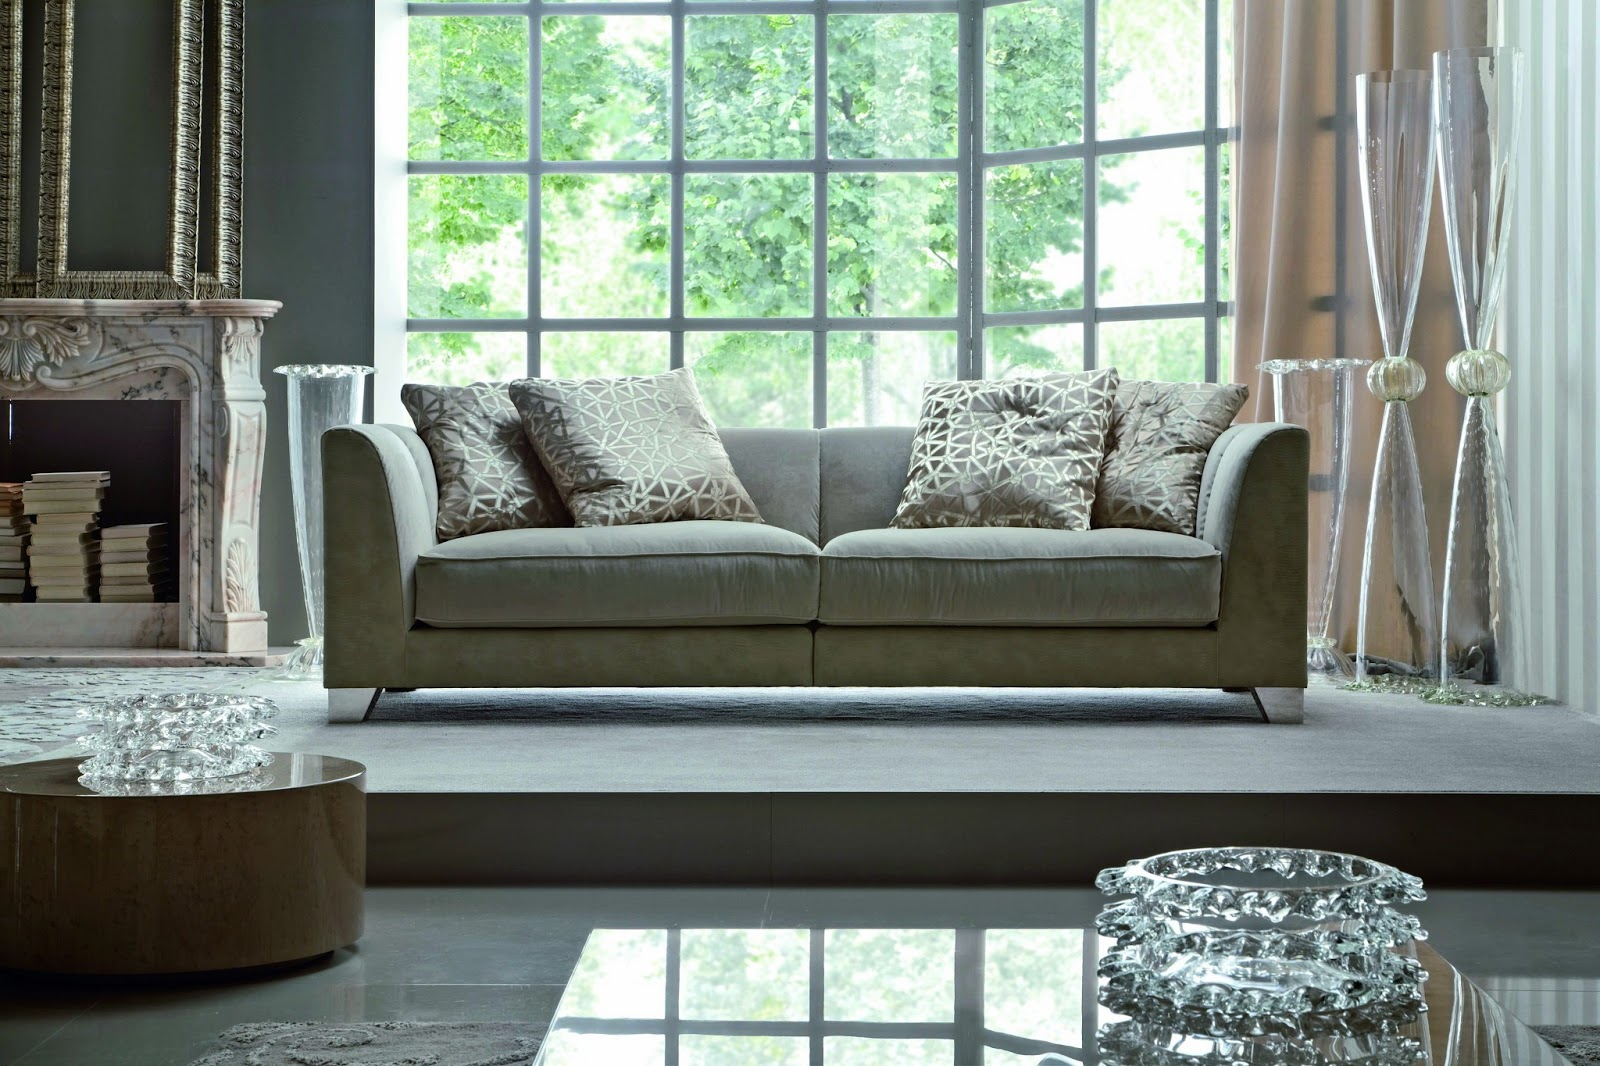 Modern Living Room Chair The Wooden Stevens Point Wi Choosing A Comfortable Sofa Furniture For